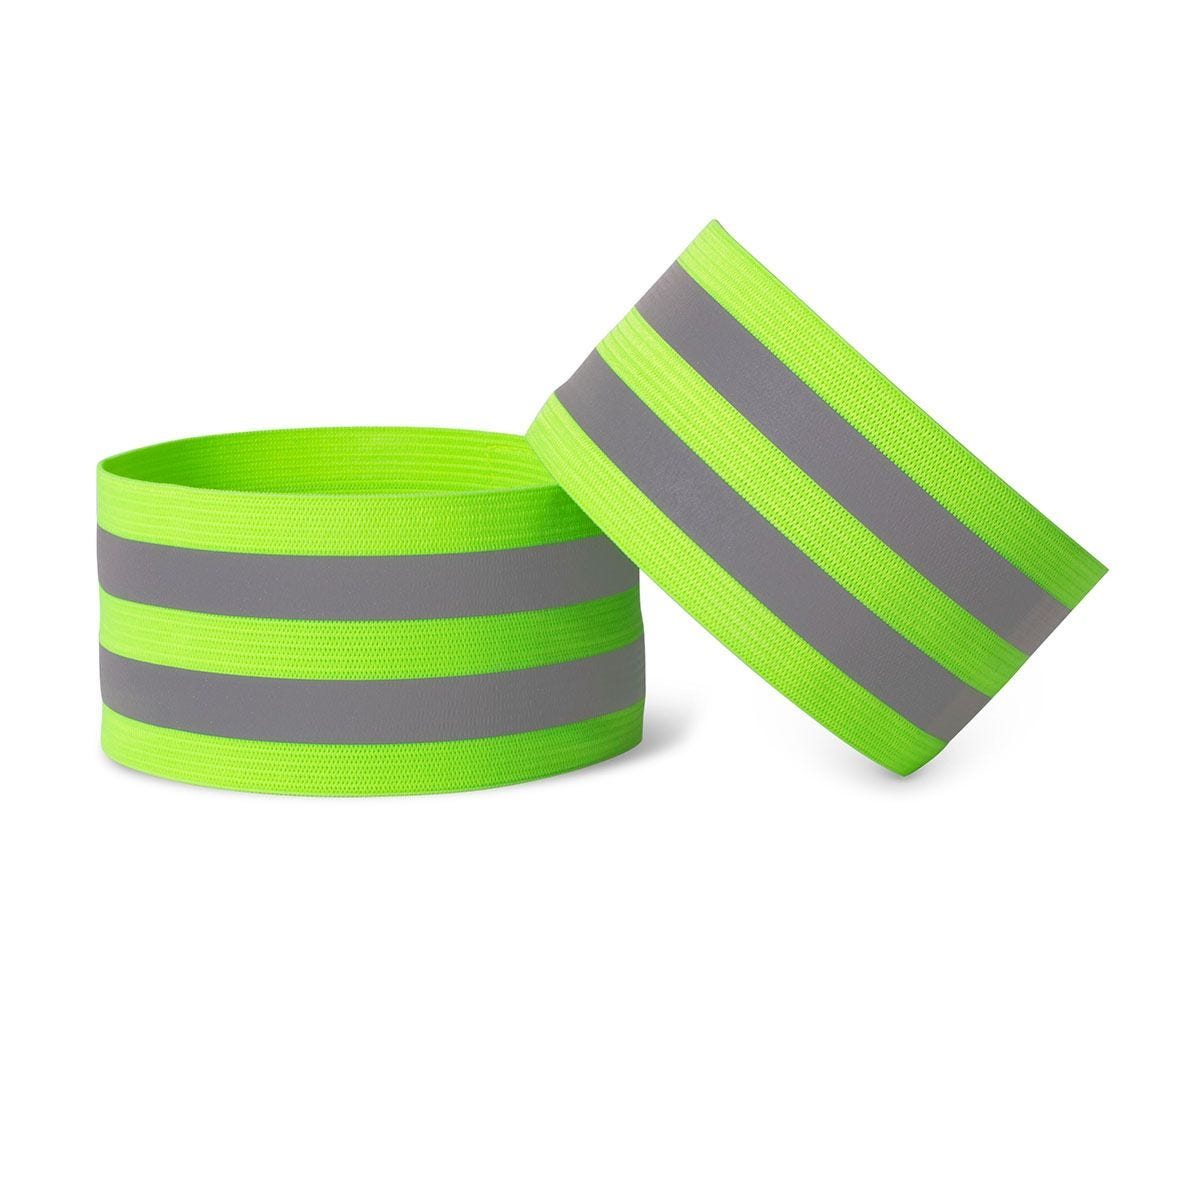 The Gym Sessions Reflective Arm Bands